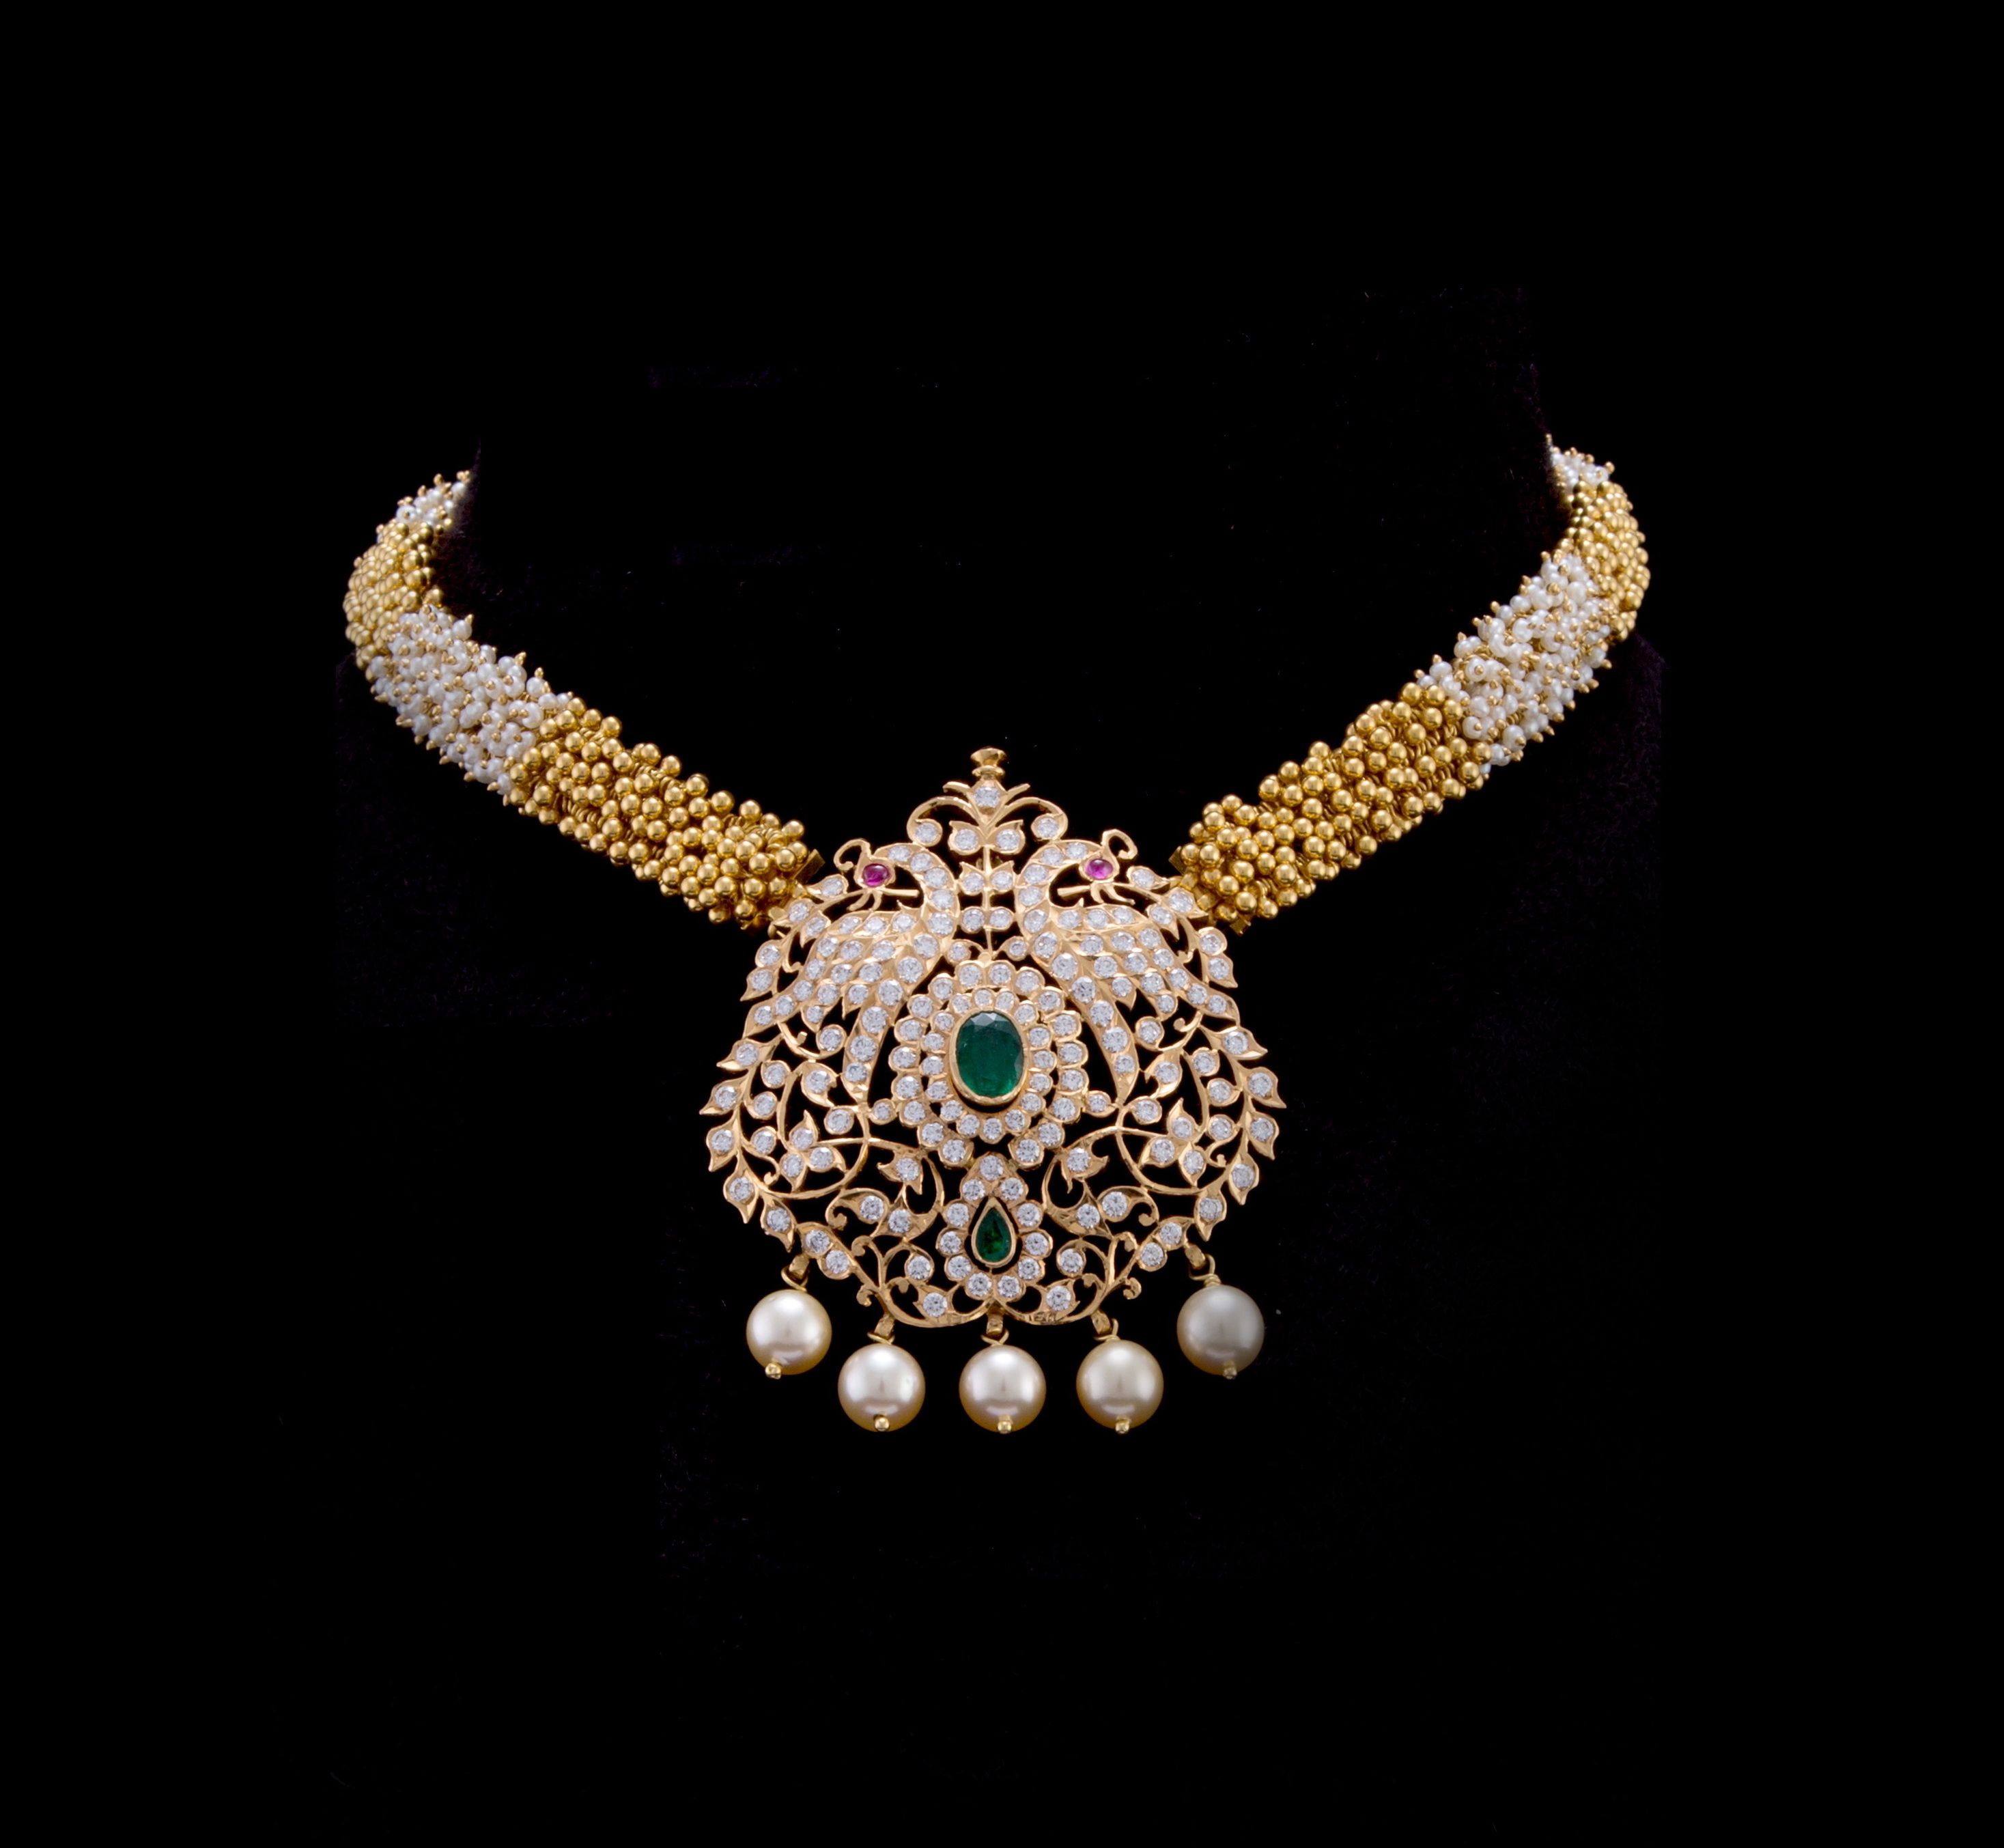 surat jewellery necklace rughanathpura bzdet photos near manufacturers images sibubhai pictures hanuman soni temple diamond chothiya